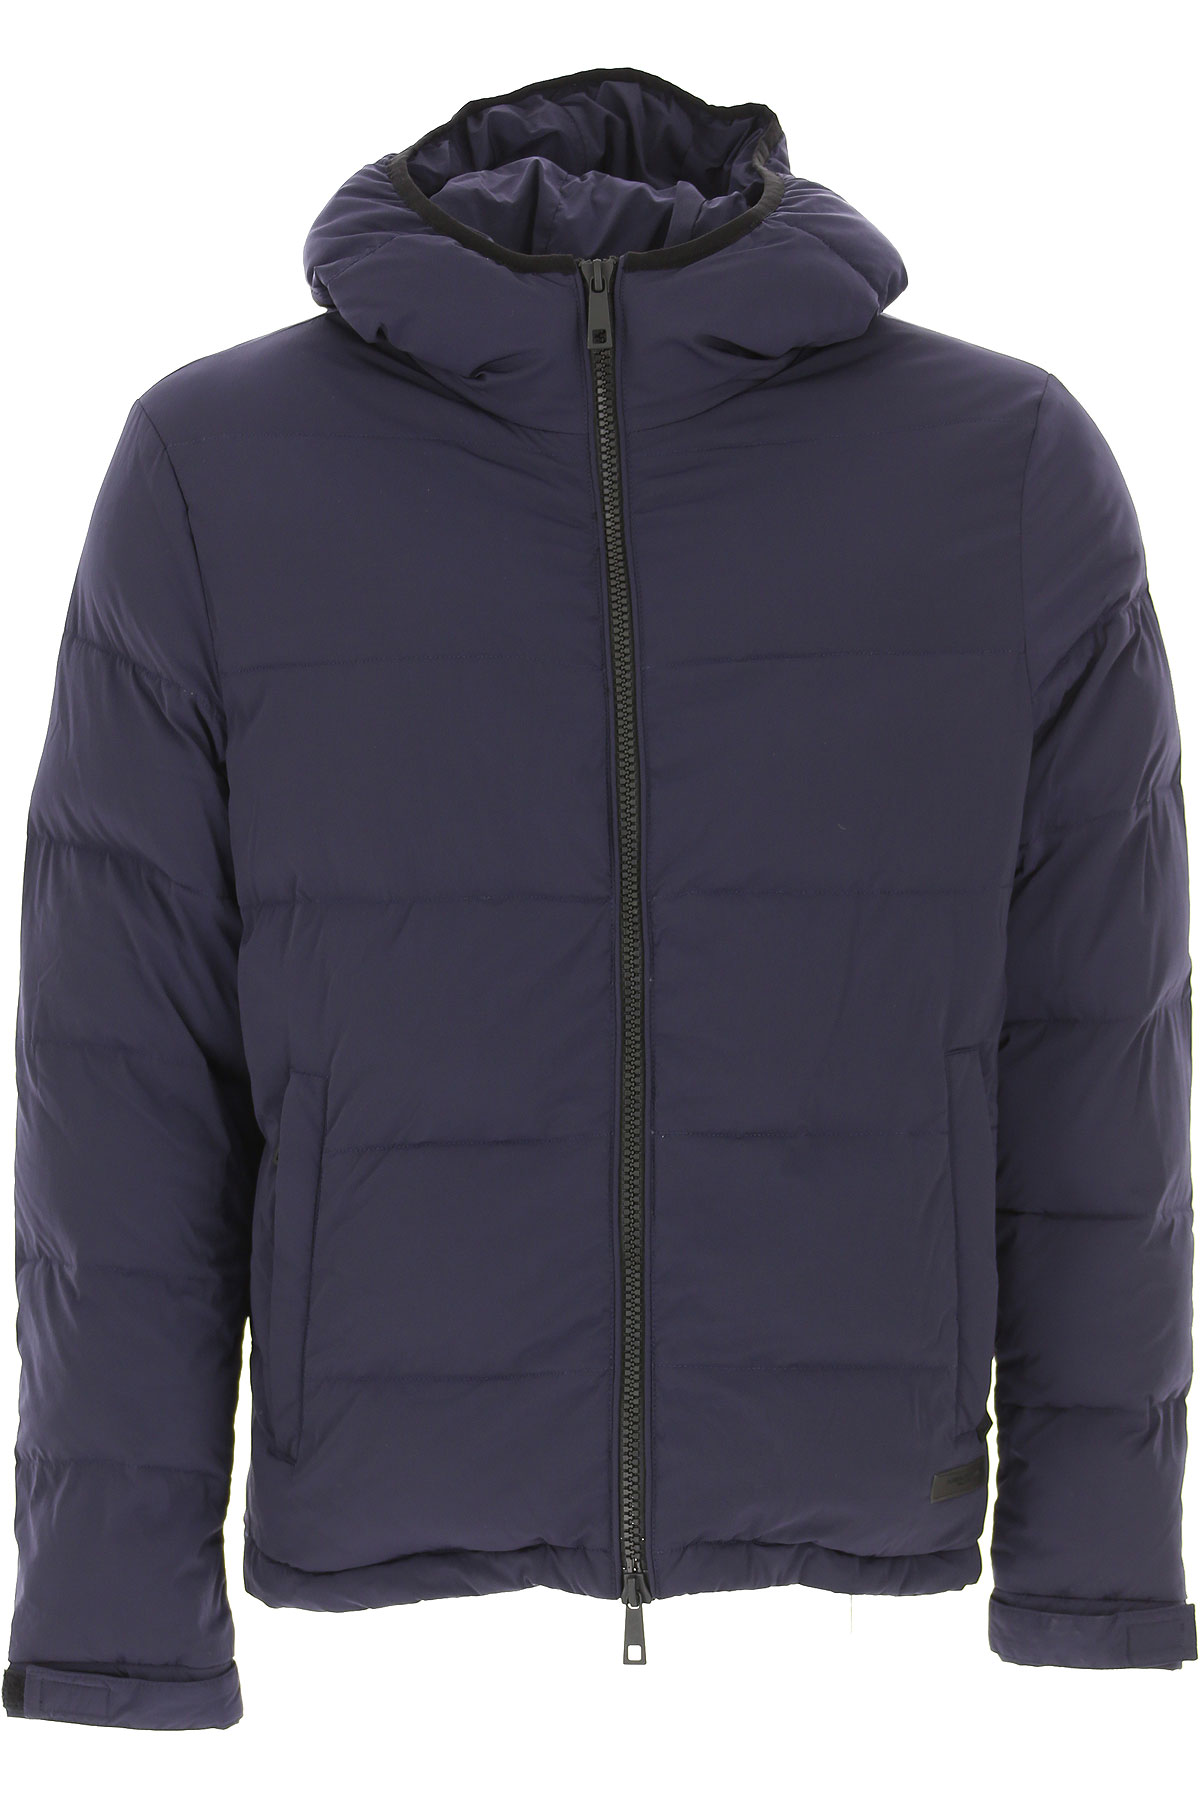 Paolo Pecora Jacket for Men On Sale, Dark Blue, polyester, 2019, L M S XL